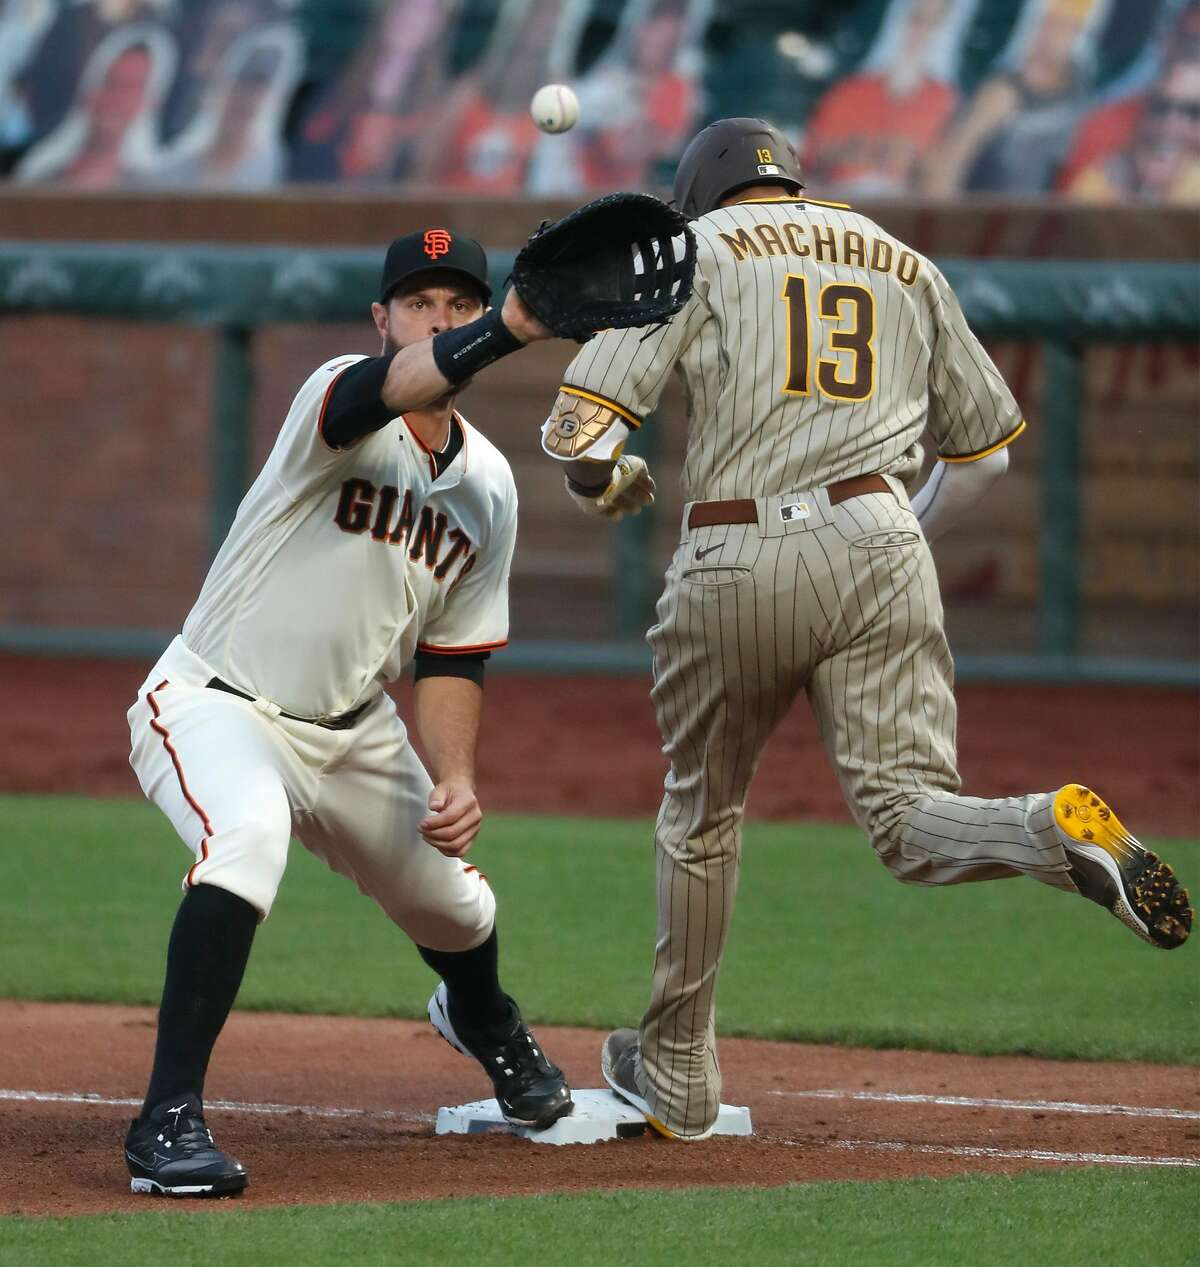 San Diego Padres' Manny Machado beats out an infield hit as San Francisco Giants' Brandon Belt awaits the throw in 4th inning during MLB game at Oracle Park in San Francisco, Calif., on Thursday, July 30, 2020.